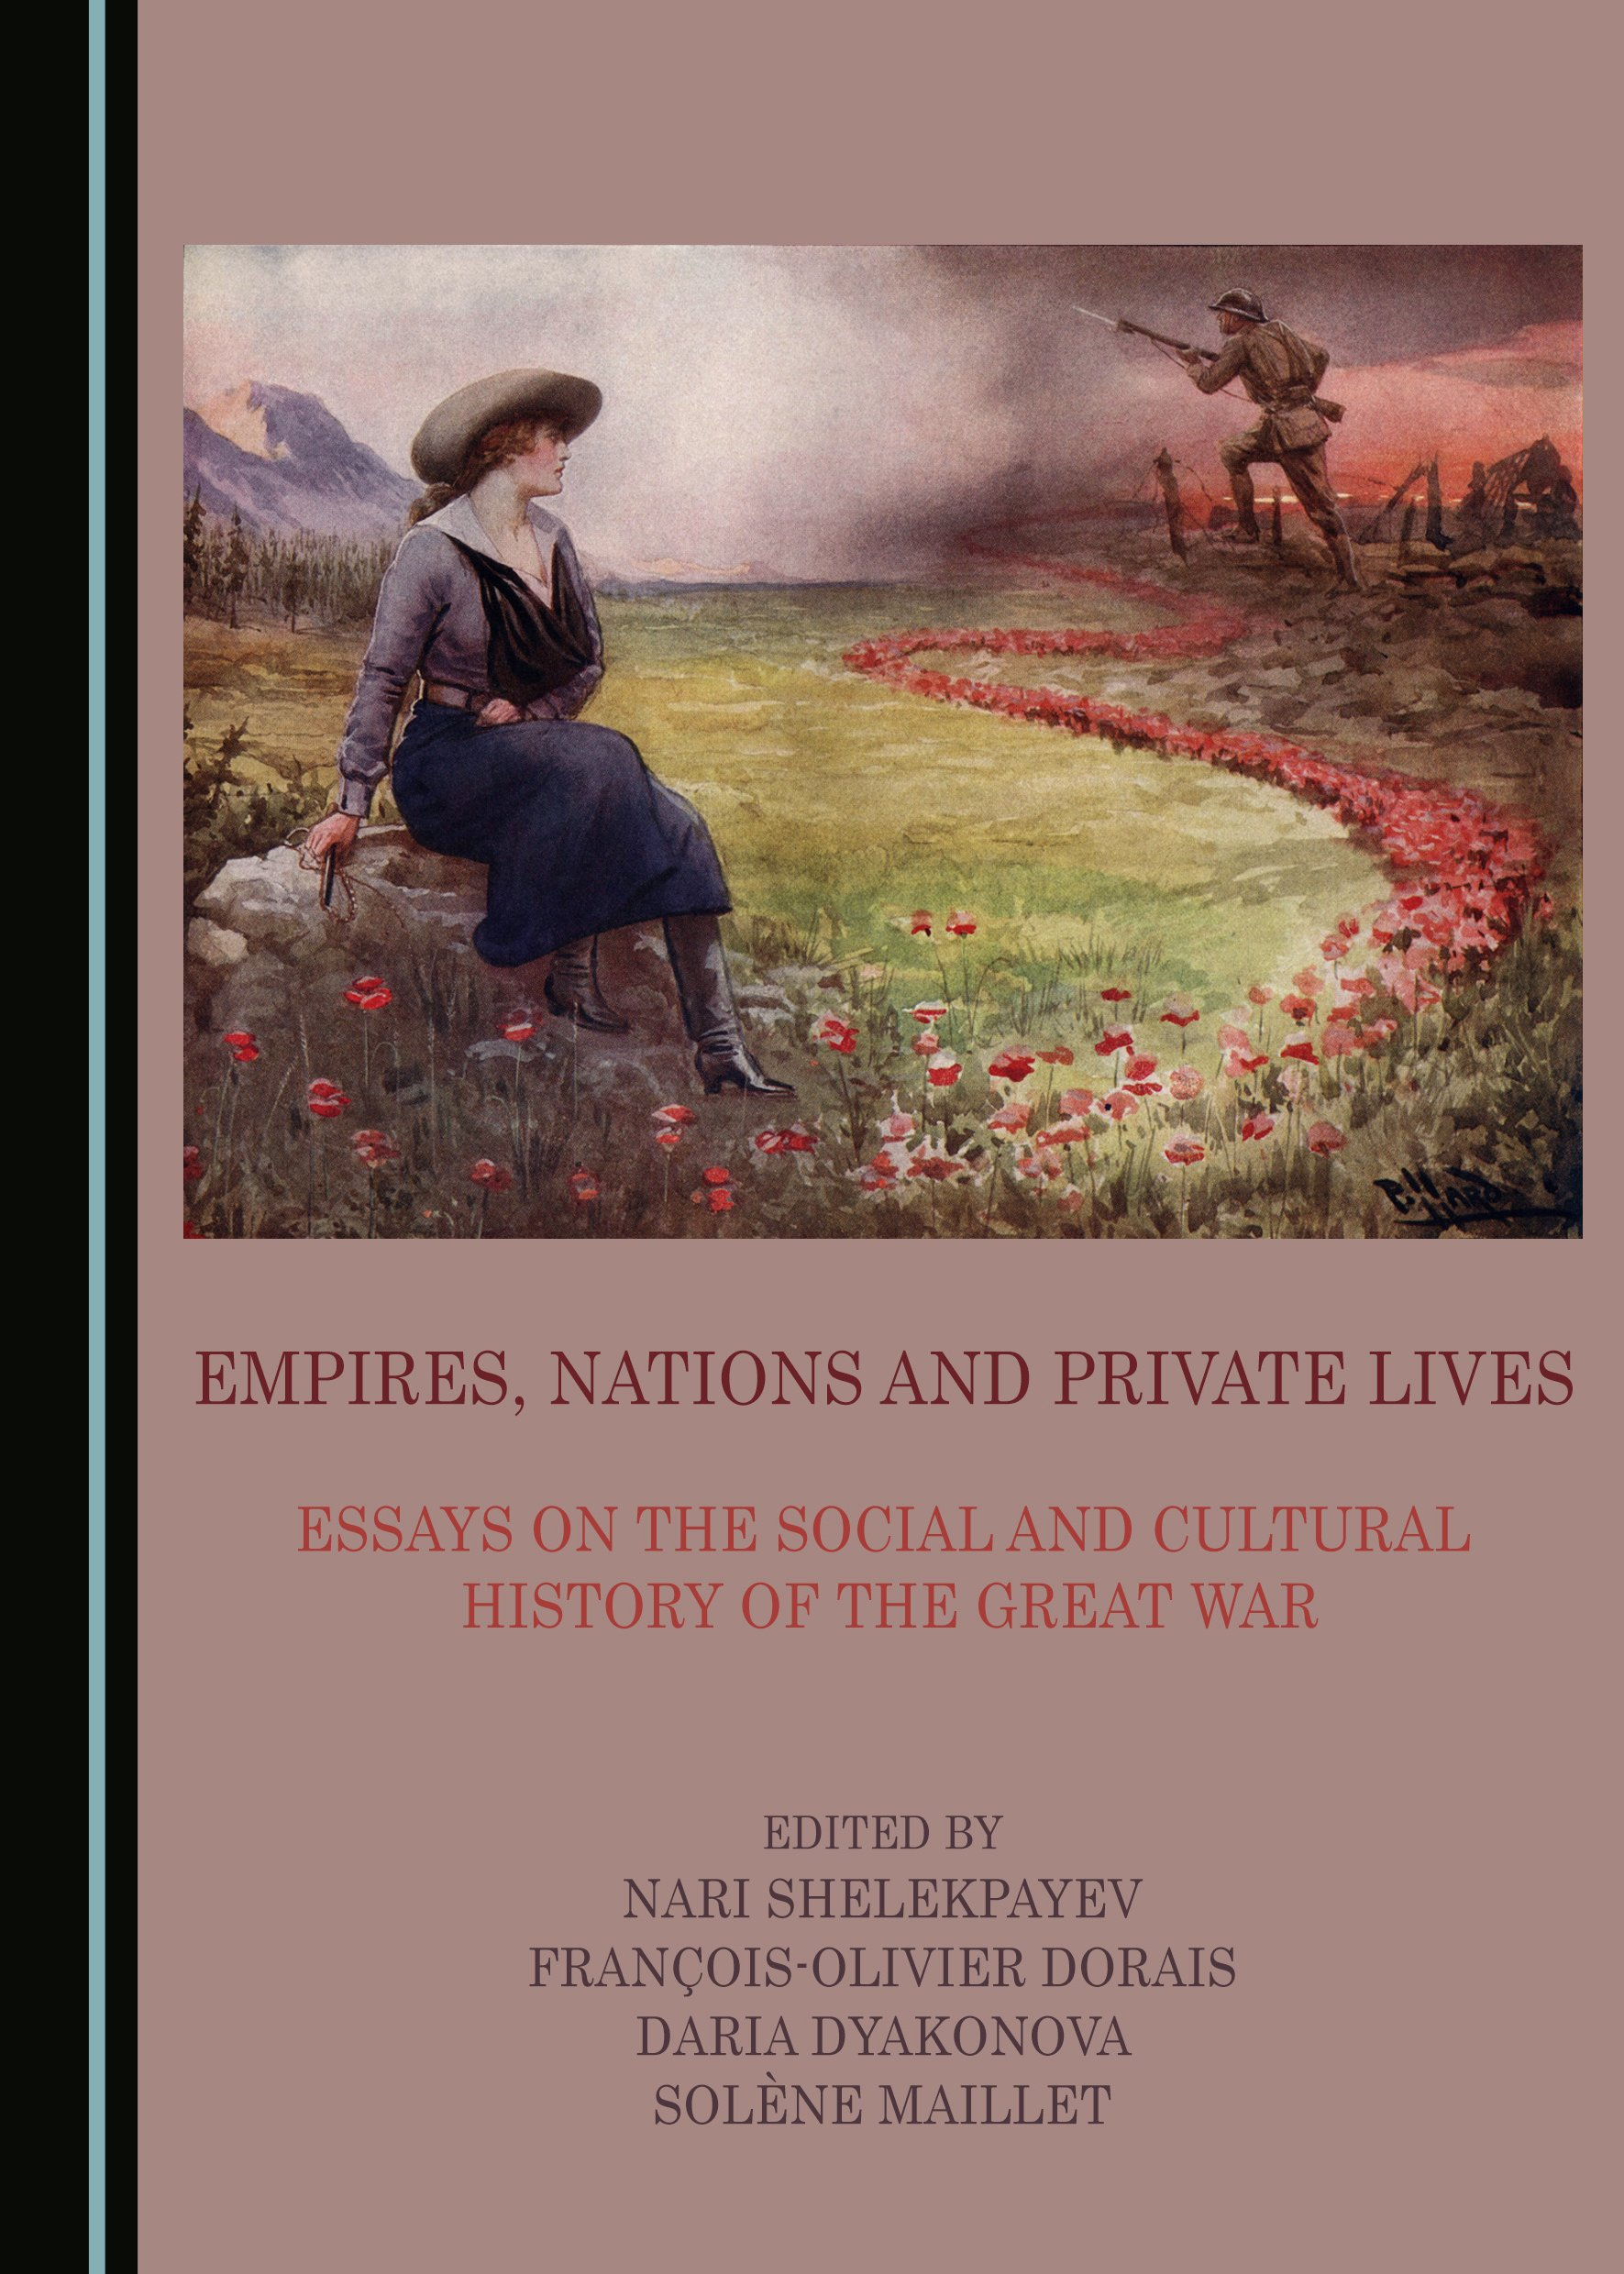 Empires, Nations and Private Lives: Essays on the Social and Cultural History of the Great War